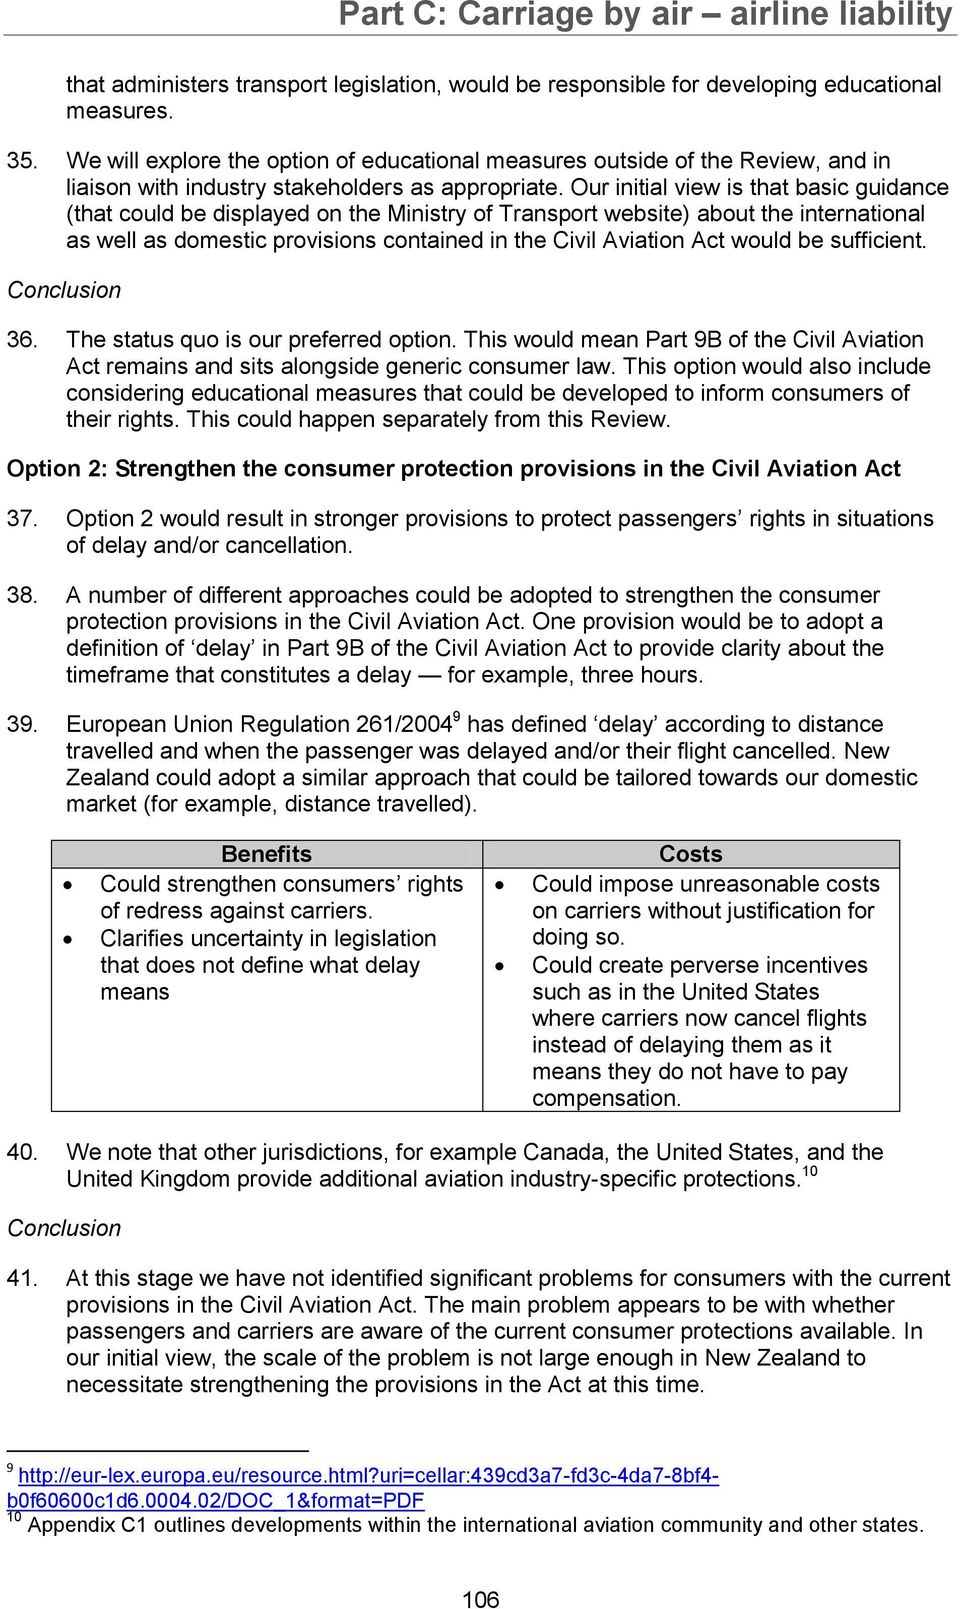 Our initial view is that basic guidance (that could be displayed on the Ministry of Transport website) about the international as well as domestic provisions contained in the Civil Aviation Act would